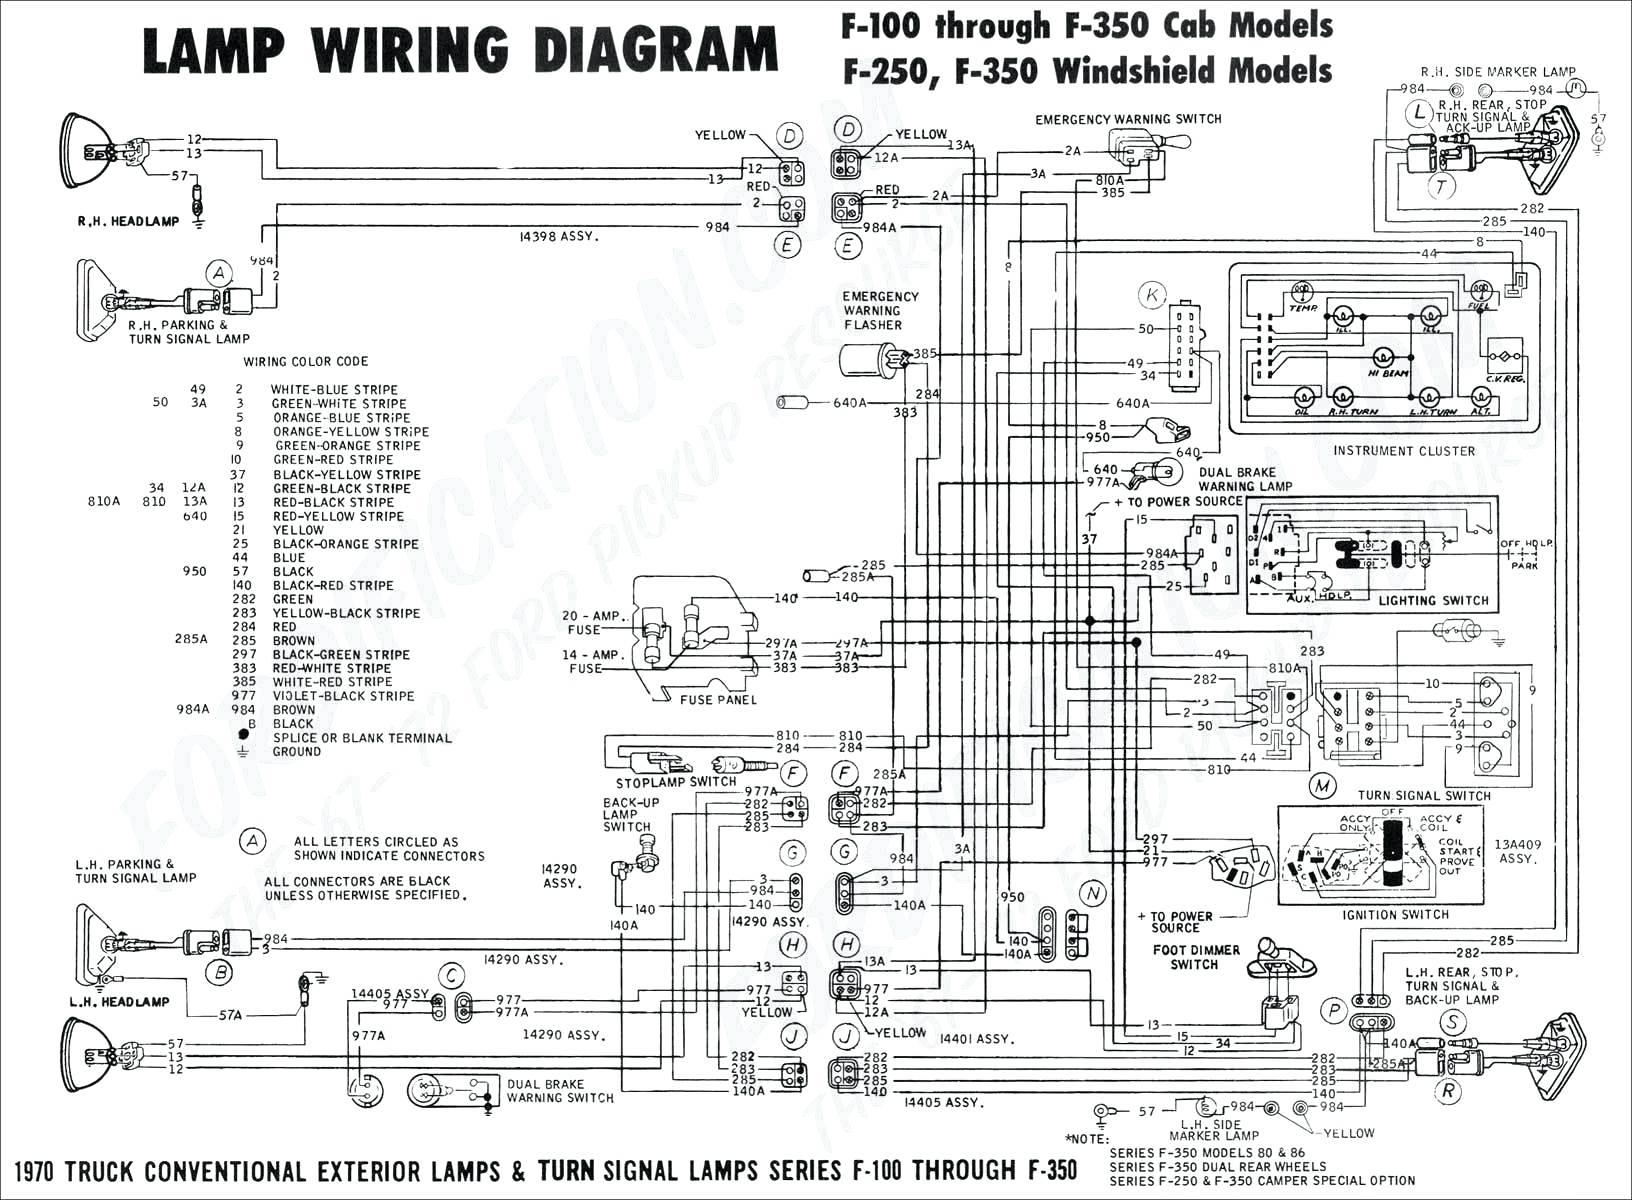 Dodge Truck Ke Wiring Diagrams - Wiring Diagram Val on flow diagram, block diagram, circuit diagram, yed graph diagram, exploded view diagram, schema diagram, critical mass diagram, system diagram, carm diagram, process diagram, sequence diagram, electric current diagram, wiring diagram, isometric diagram, line diagram, concept diagram, cutaway diagram, problem solving diagram, network diagram,